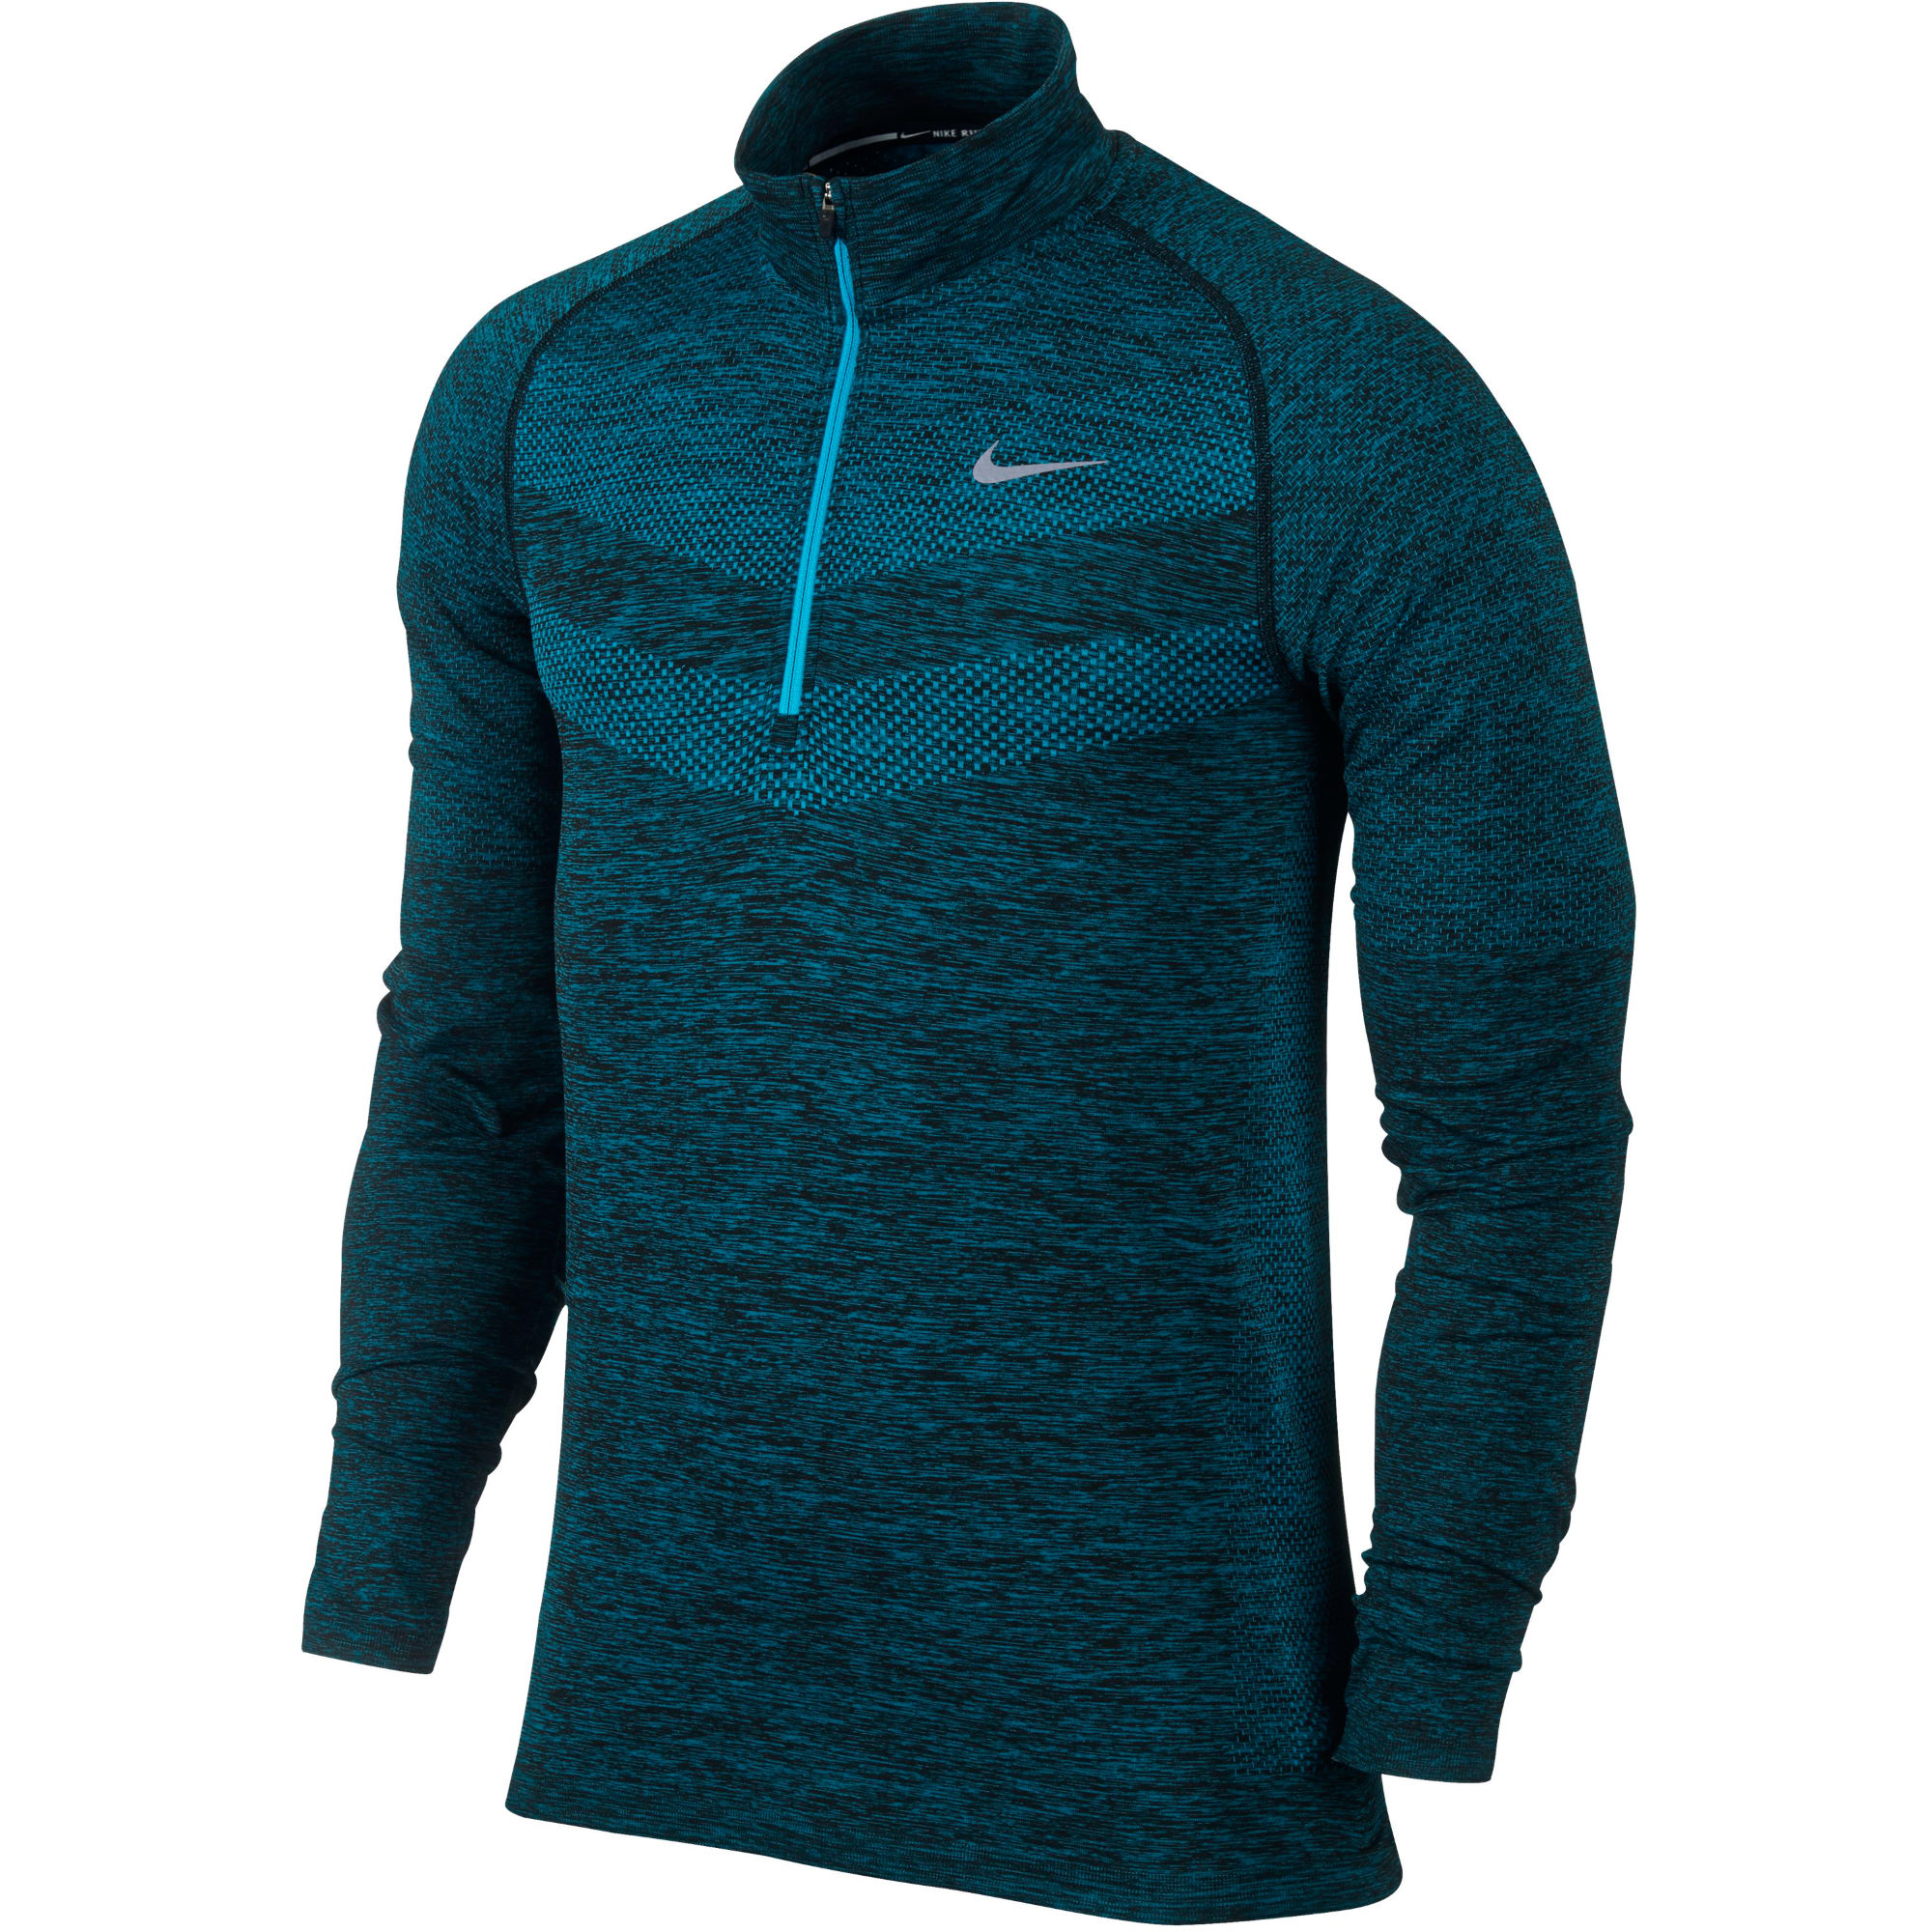 Wiggle nike dri fit knit 1 2 zip top sp15 long for Under armour dri fit long sleeve shirts